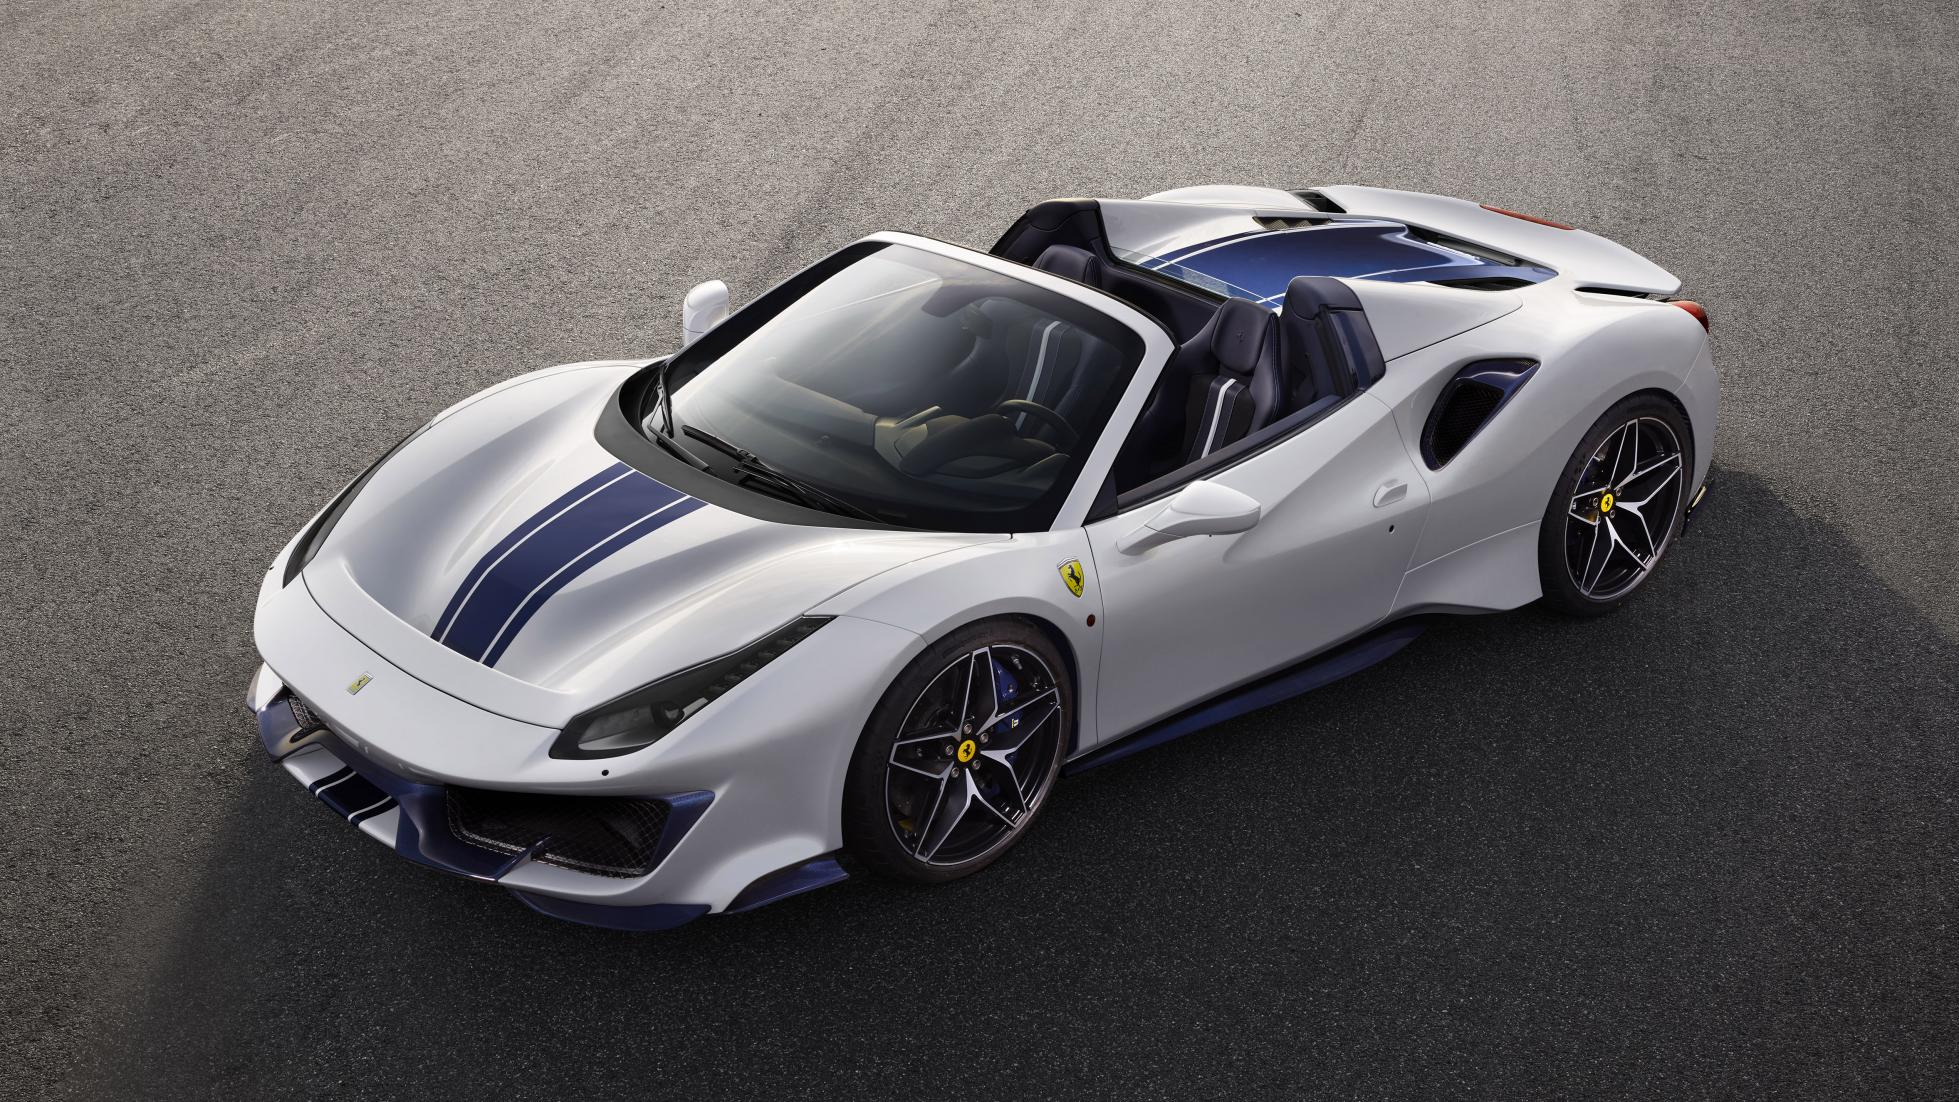 Ferrari 488 Pista Spider Looks Like A Record Car In Live